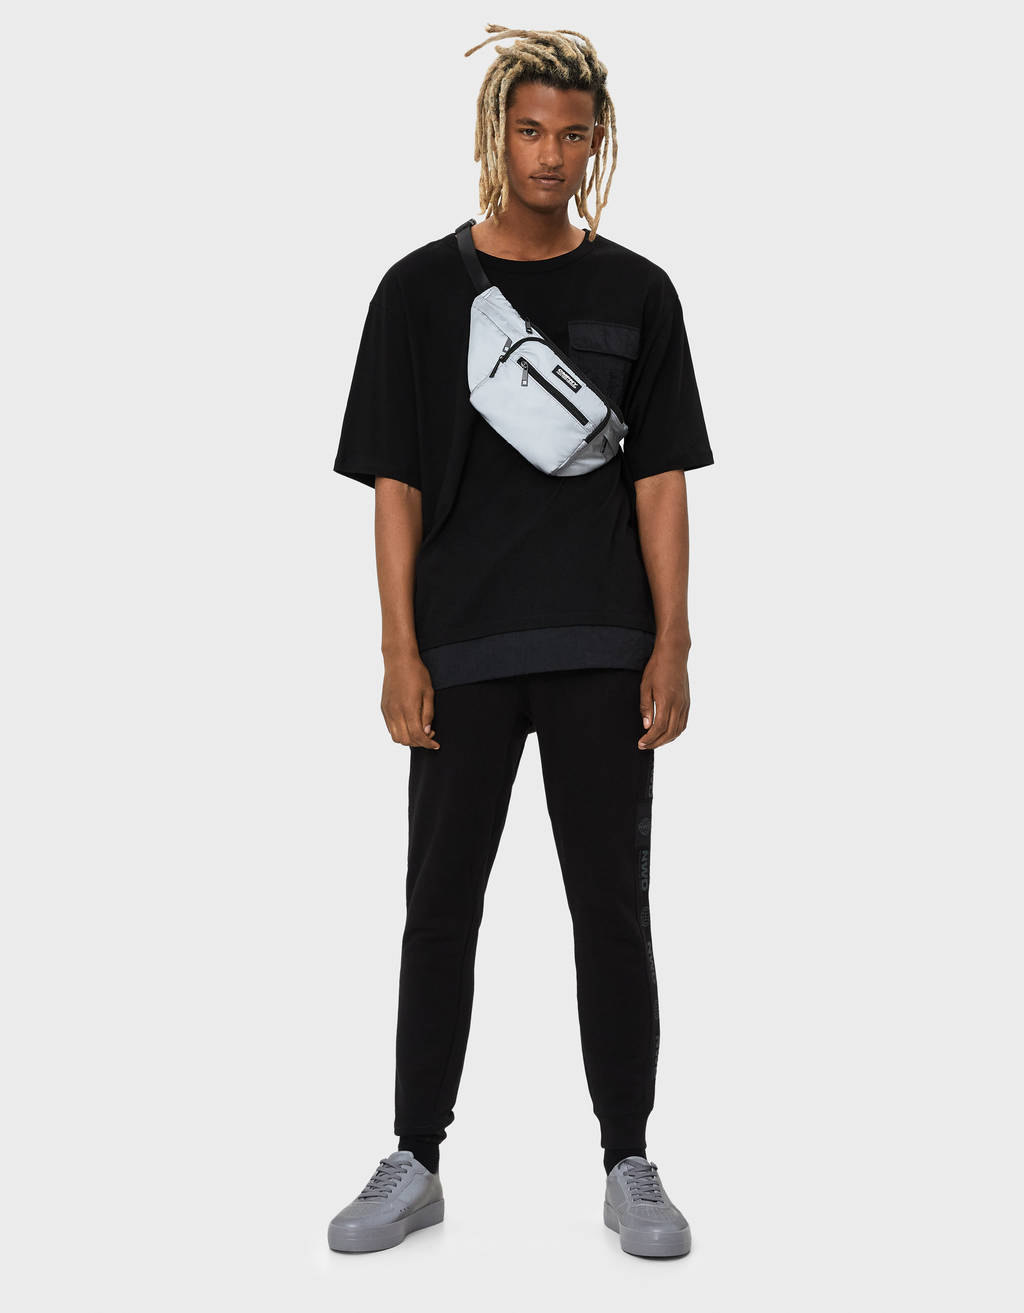 Jogging trousers with reflective detail